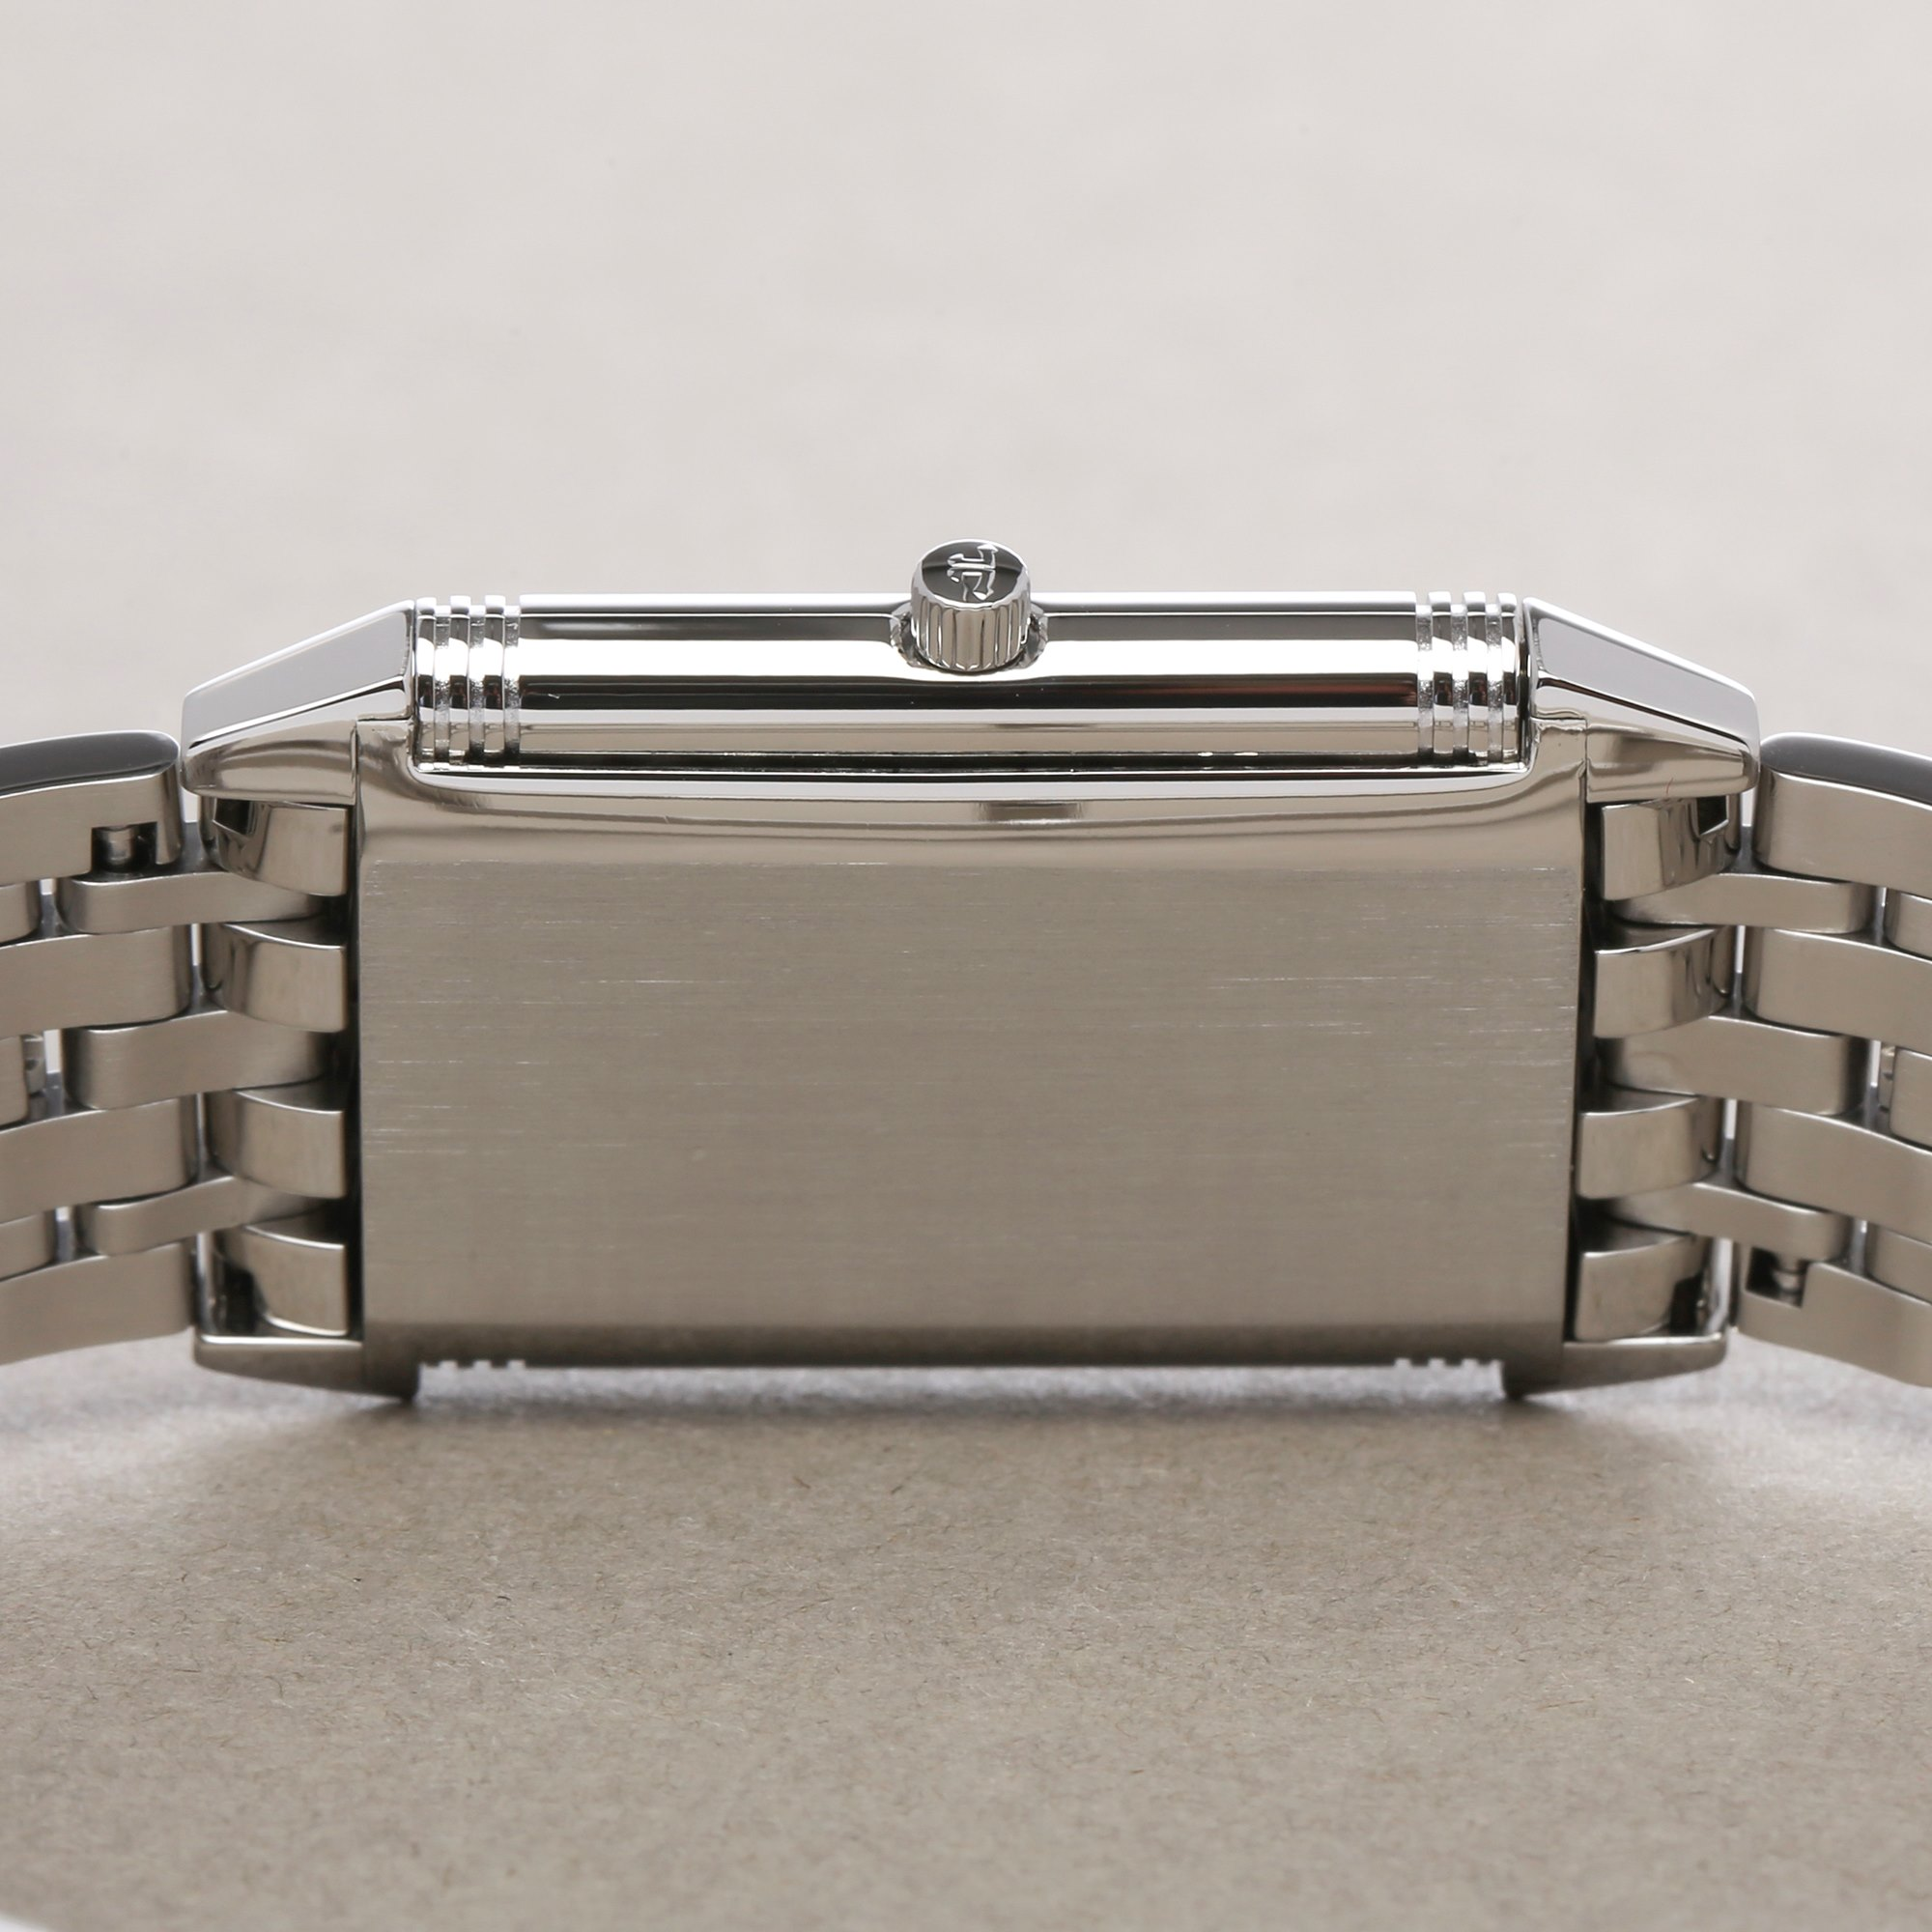 Jaeger-LeCoultre Reverso Classique Stainless Steel 250.8.86